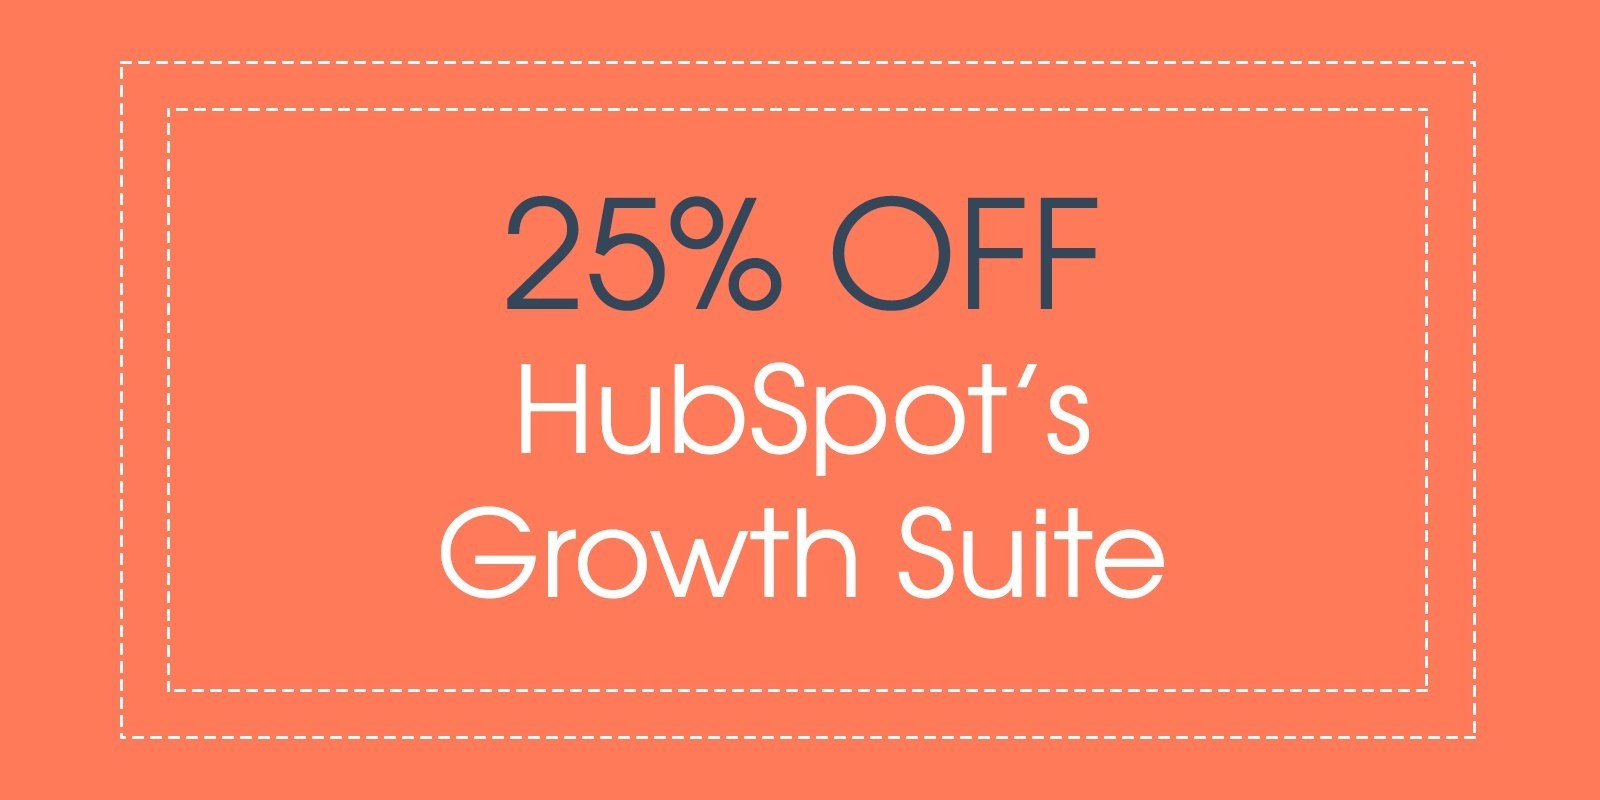 25% off HubSpot Growth Suite